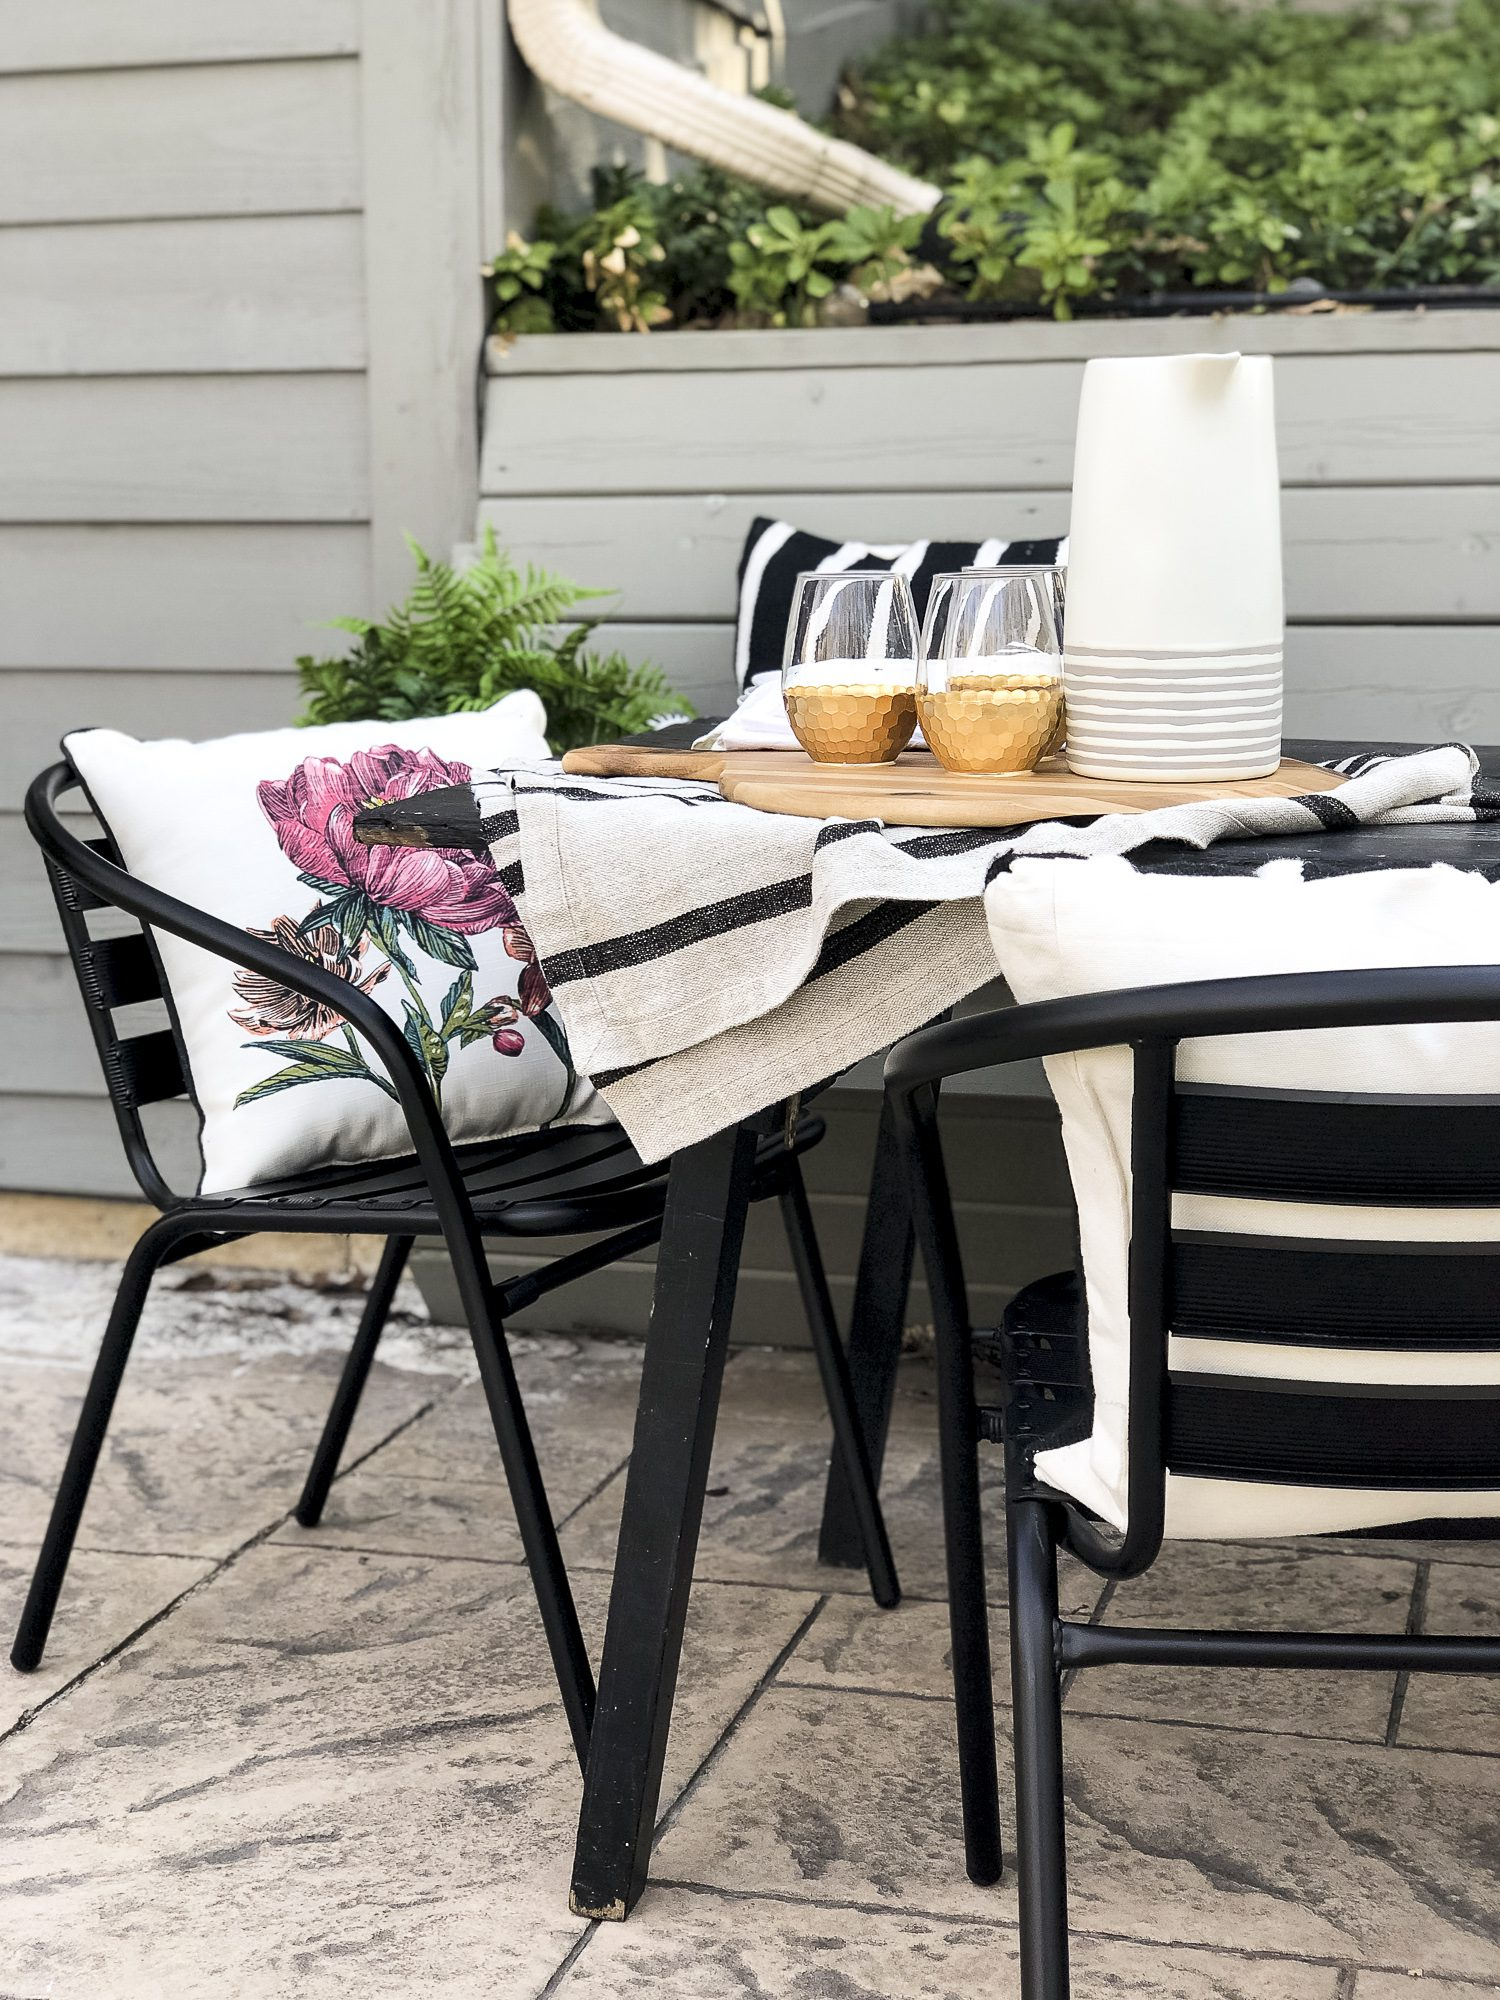 Do you love outdoor entertaining? Today I'm sharing easy ways to style your back patio with durable furniture and effortless decor for simple entertaining. #fromhousetohaven #patiodecor #outdoordining #backpatio